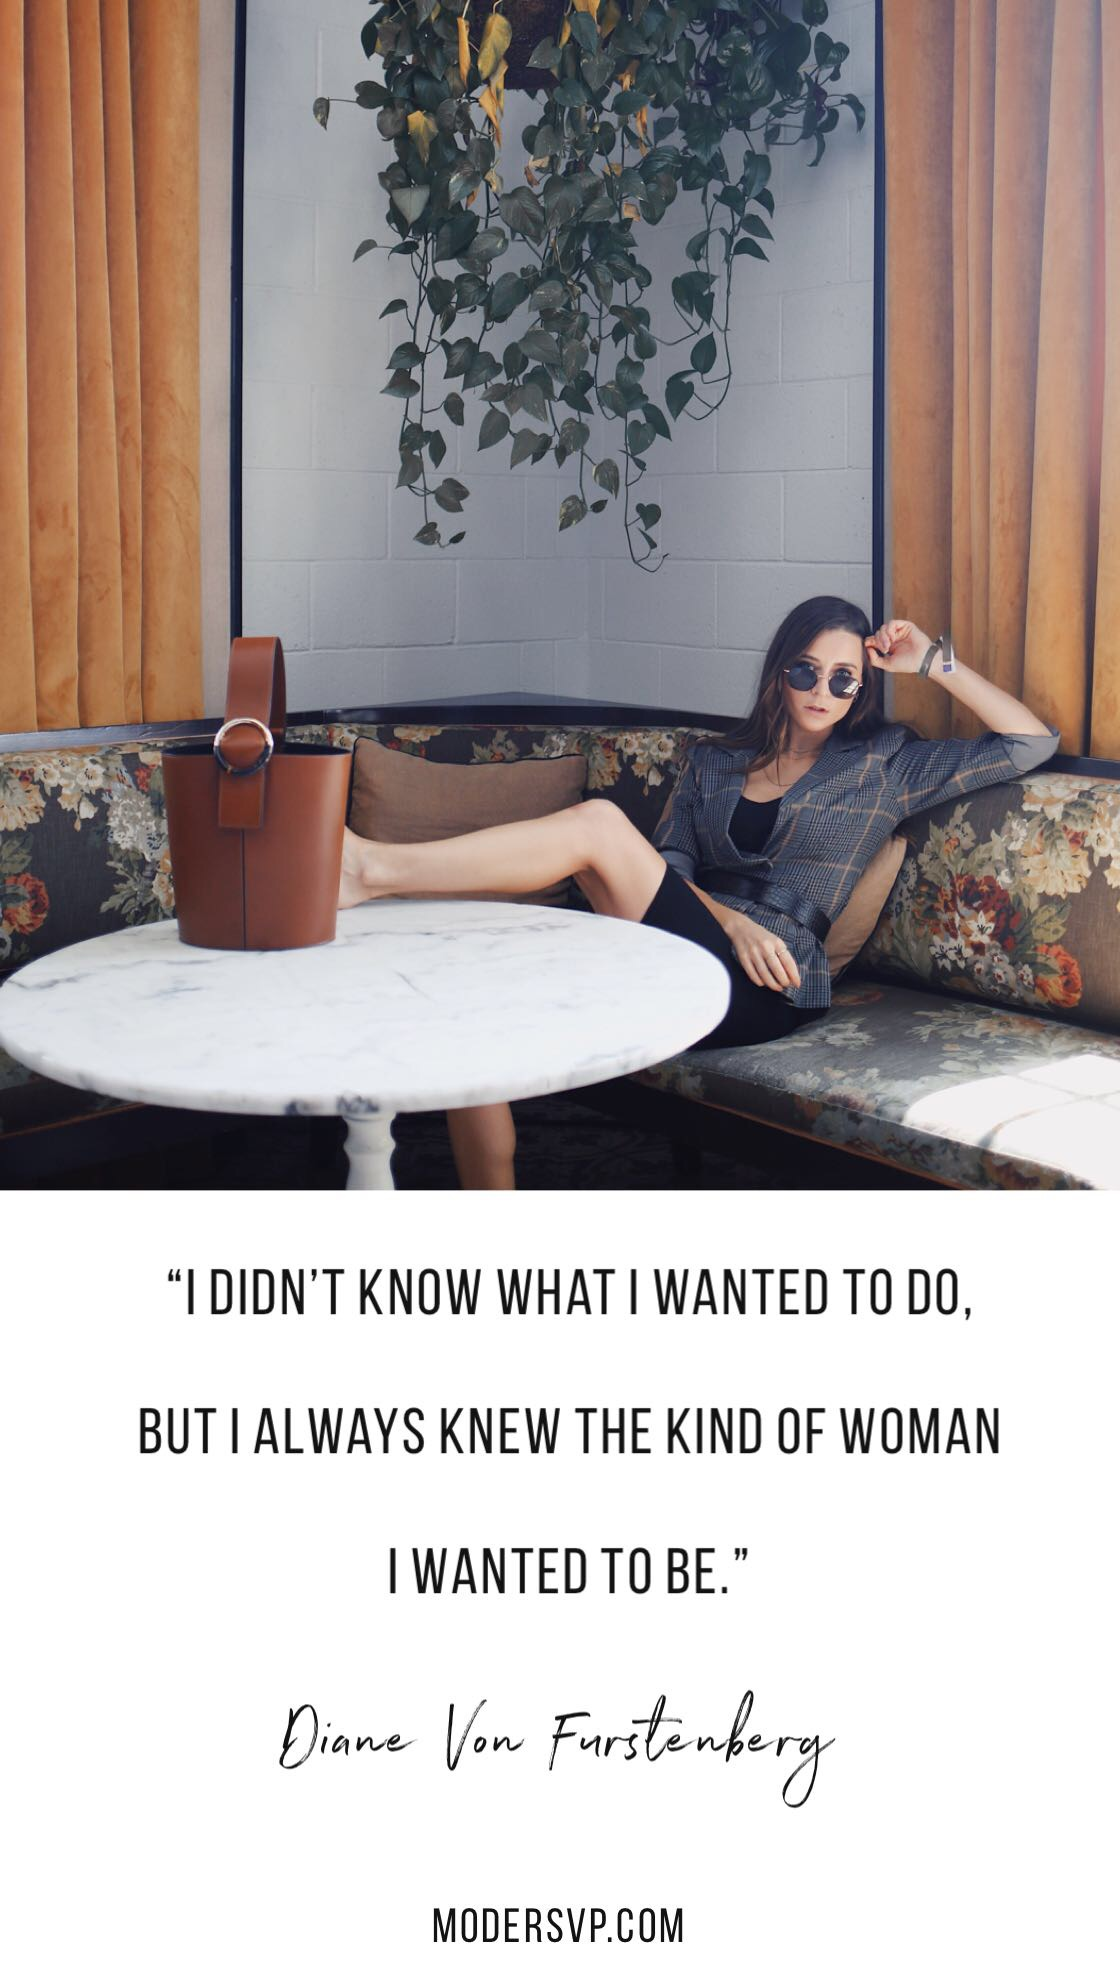 """Best Style quotes - Inspirational Fashion Quotes - """"I didn't know what I wanted to do, but I've always knew the kind of woman I wanted to be."""" Diane Von Furstenberg - Read more style quotes from Anna Wintour, Diane Von Furstenberg, Coco Chanel and other fashion designers and style icons on Houseofcomil.com"""